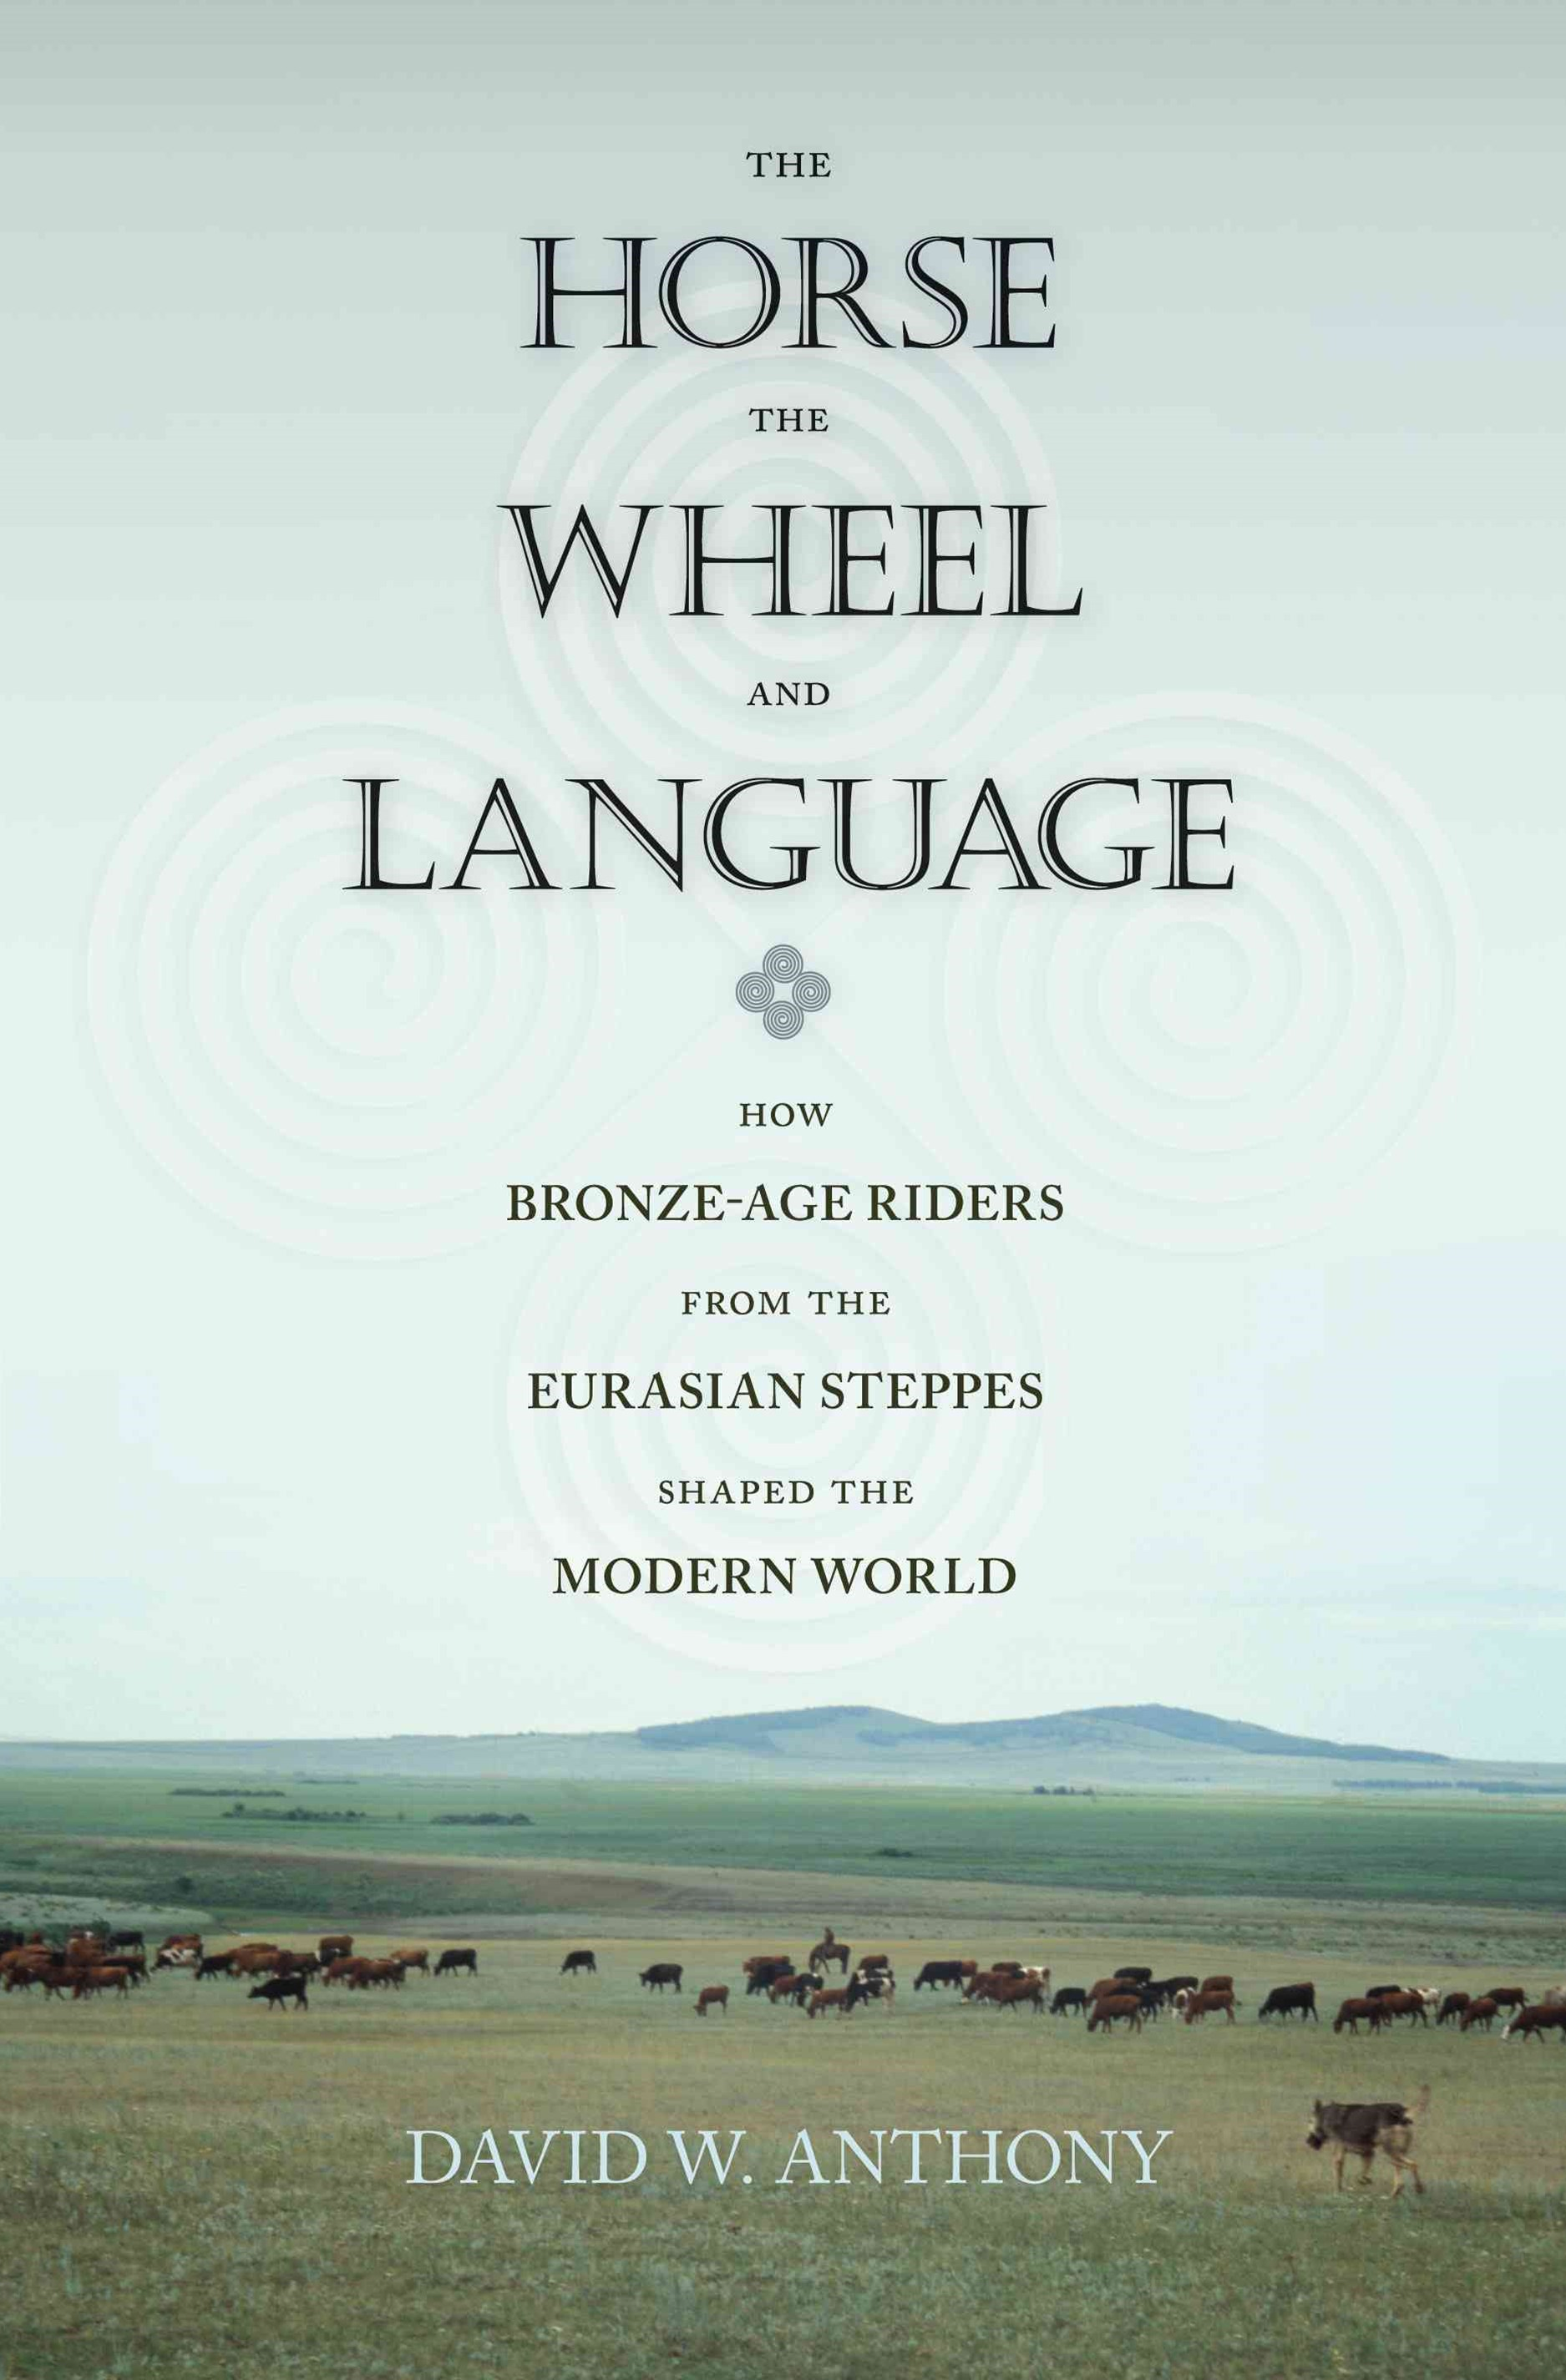 The Horse, the Wheel and Language